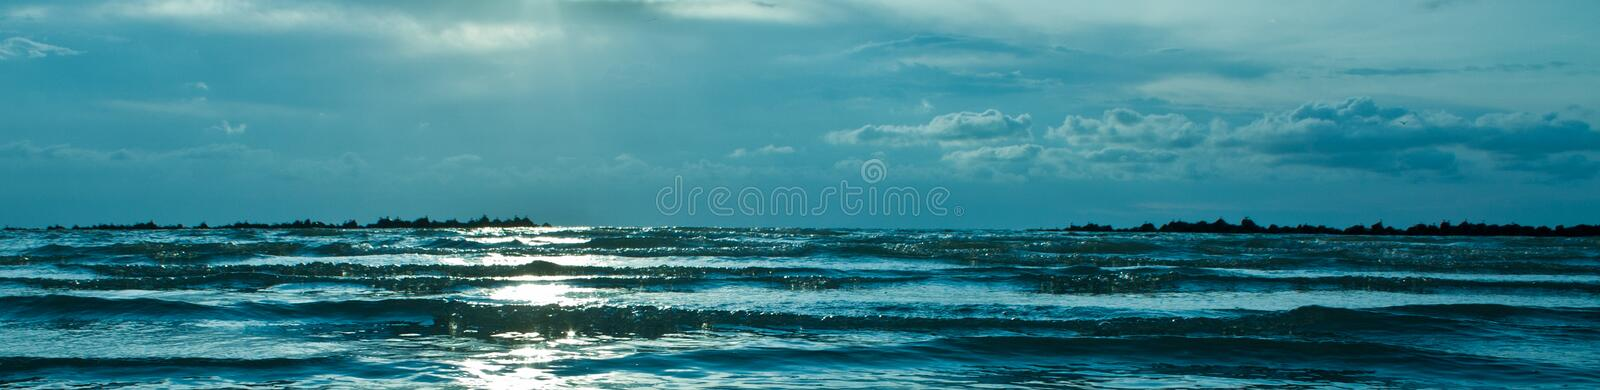 Waves in the sea stock photos